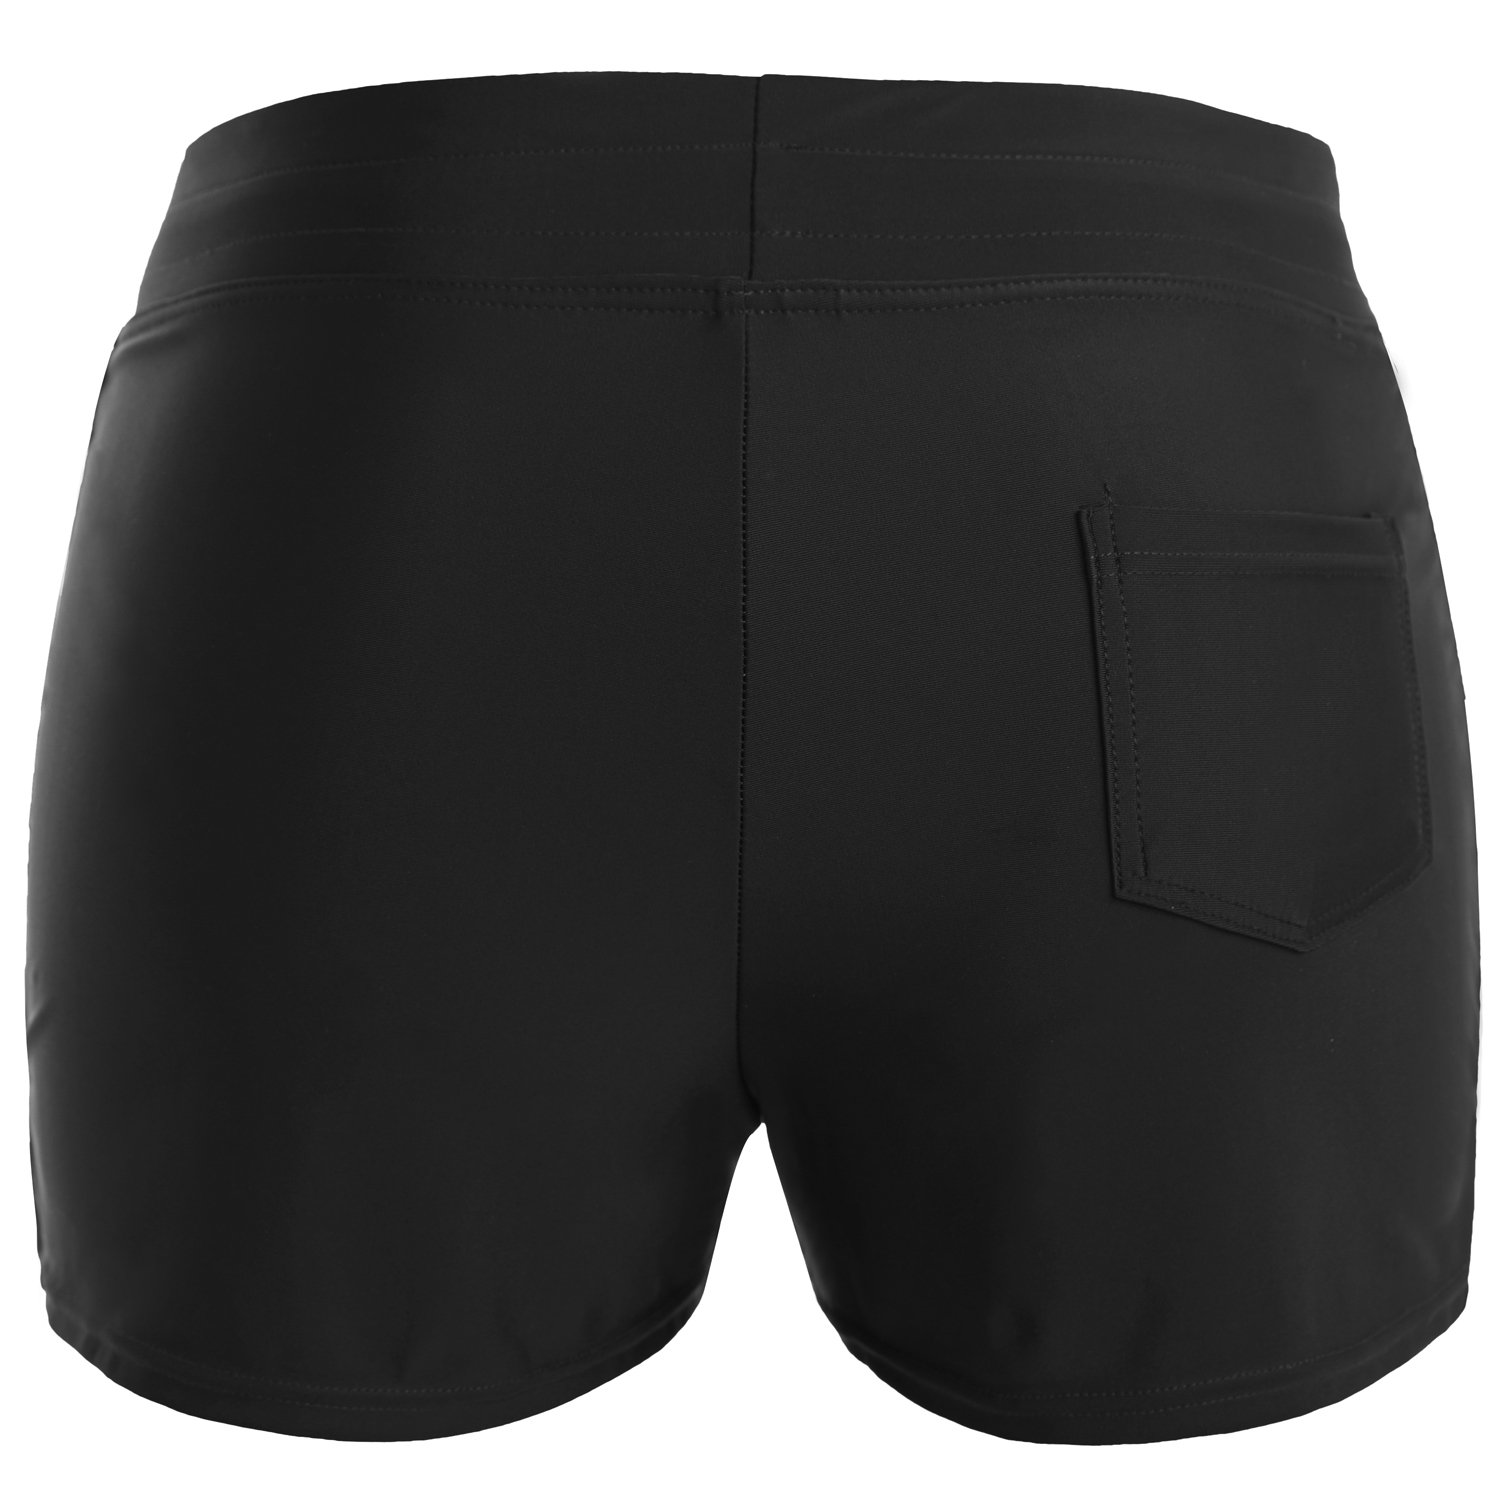 Vegatos Womens Solid Boardshorts Swimming Shorts Swim Bottoms Surfing Boyshorts Black by Vegatos (Image #3)